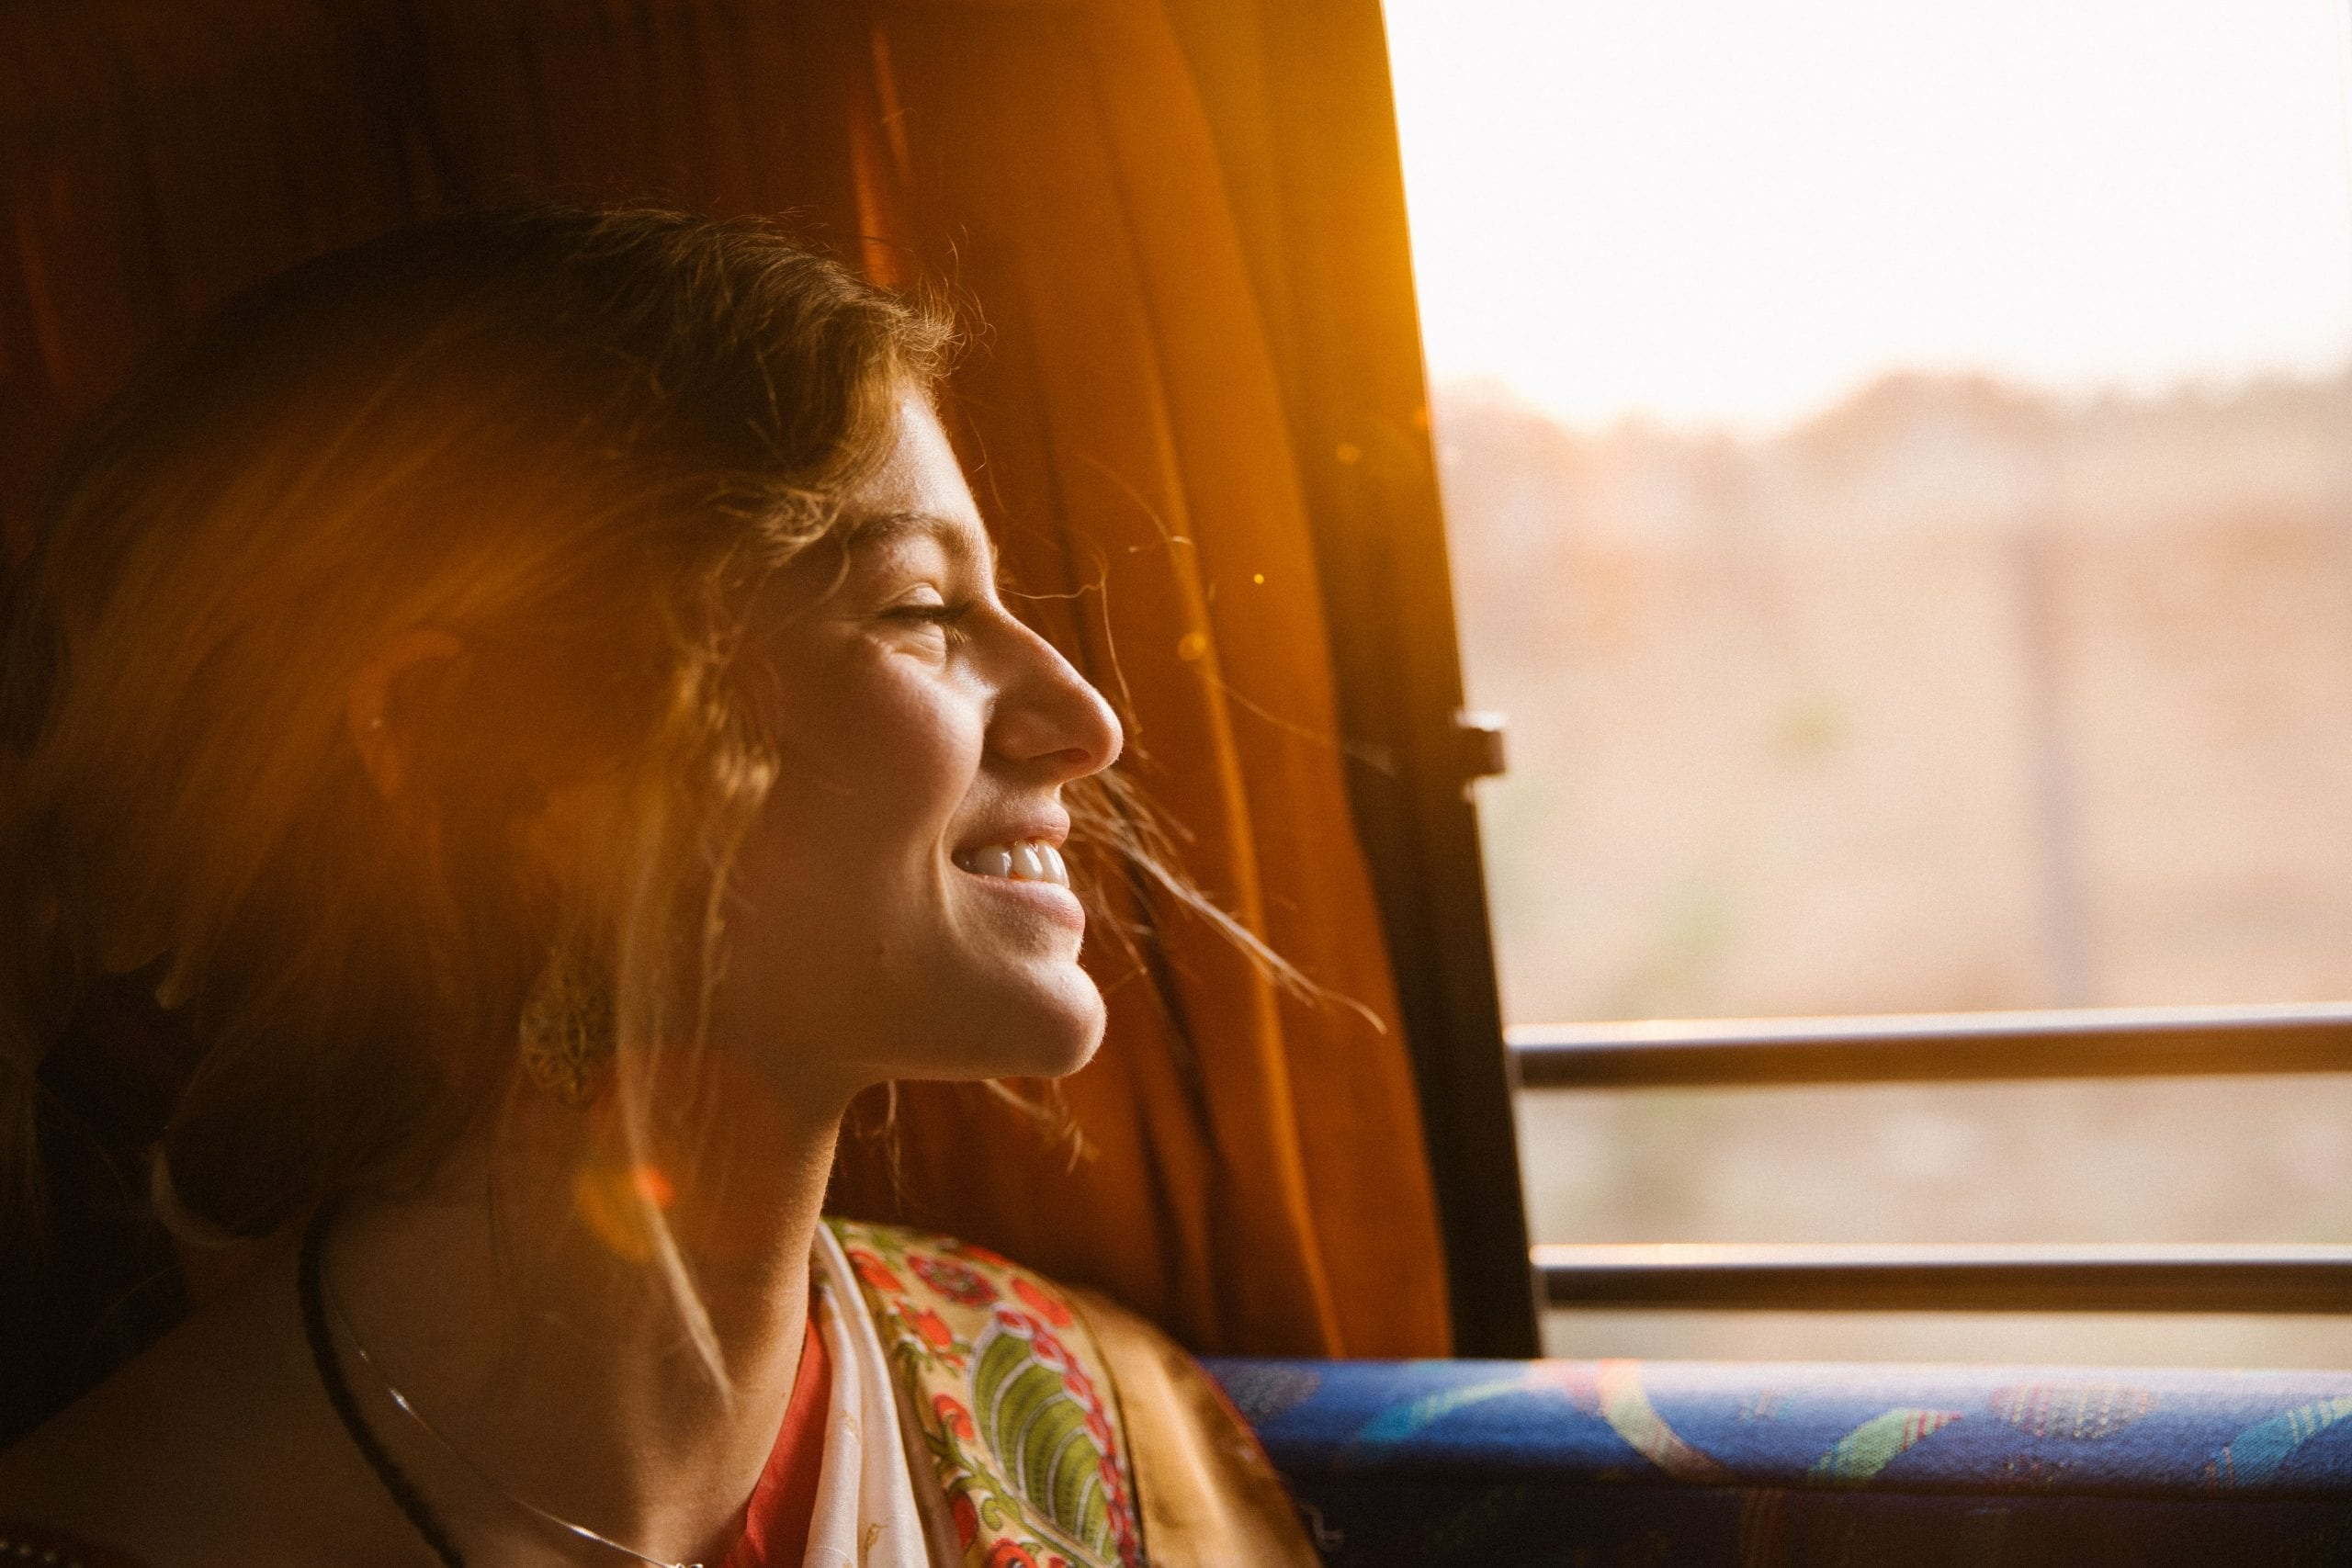 young-woman-looking-out-the-window-smiling-confident